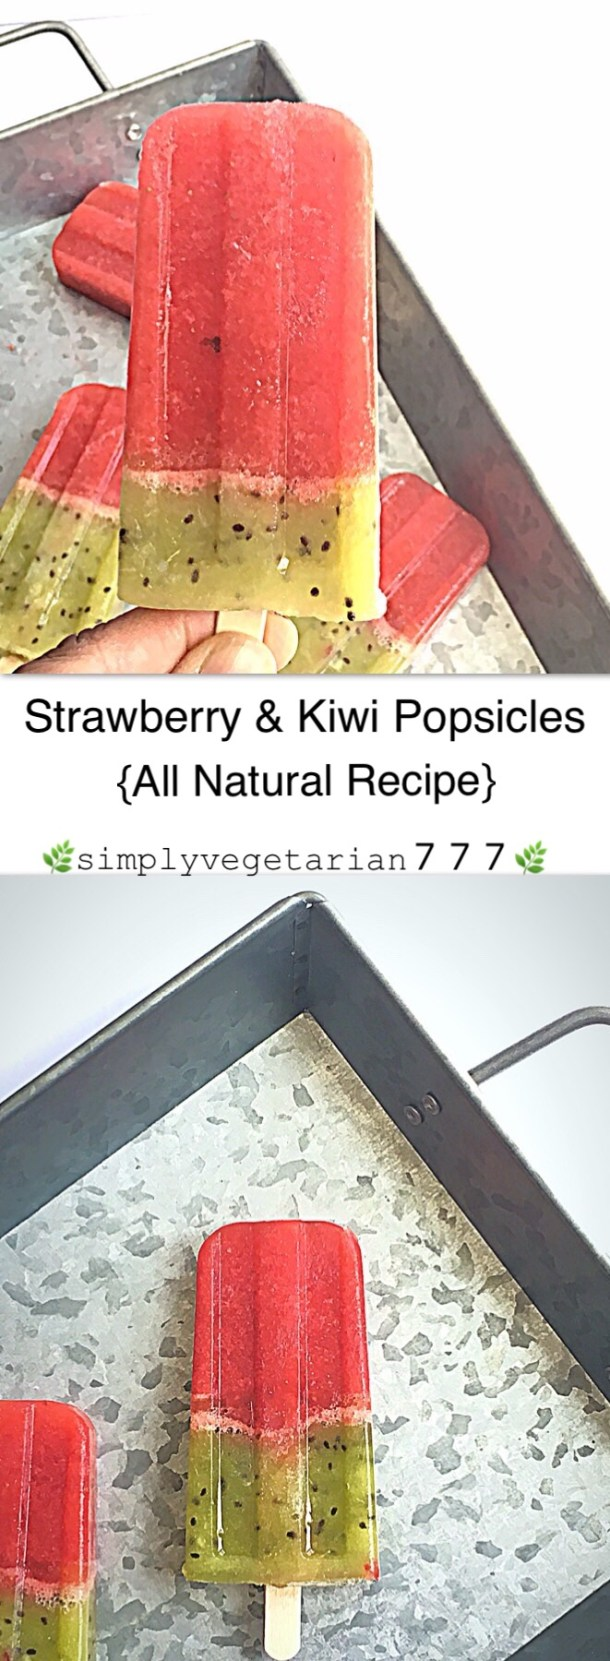 These All Natural Strawberry Kiwi Popsicles are Easy, Efficient & Delicious Popsicles made with Everyday Simple Ingredients. It is a no-hassle popsicle recipe which comes together in no time. This No-Cook Popsicle recipe is perfect to beat the summer heat in fun and healthy way. #summertreats #summerdessert #popsicle #healthypopsicle #allnaturalpopsicle #strawberry #kiwi #healthypopsicle #nocookicecream